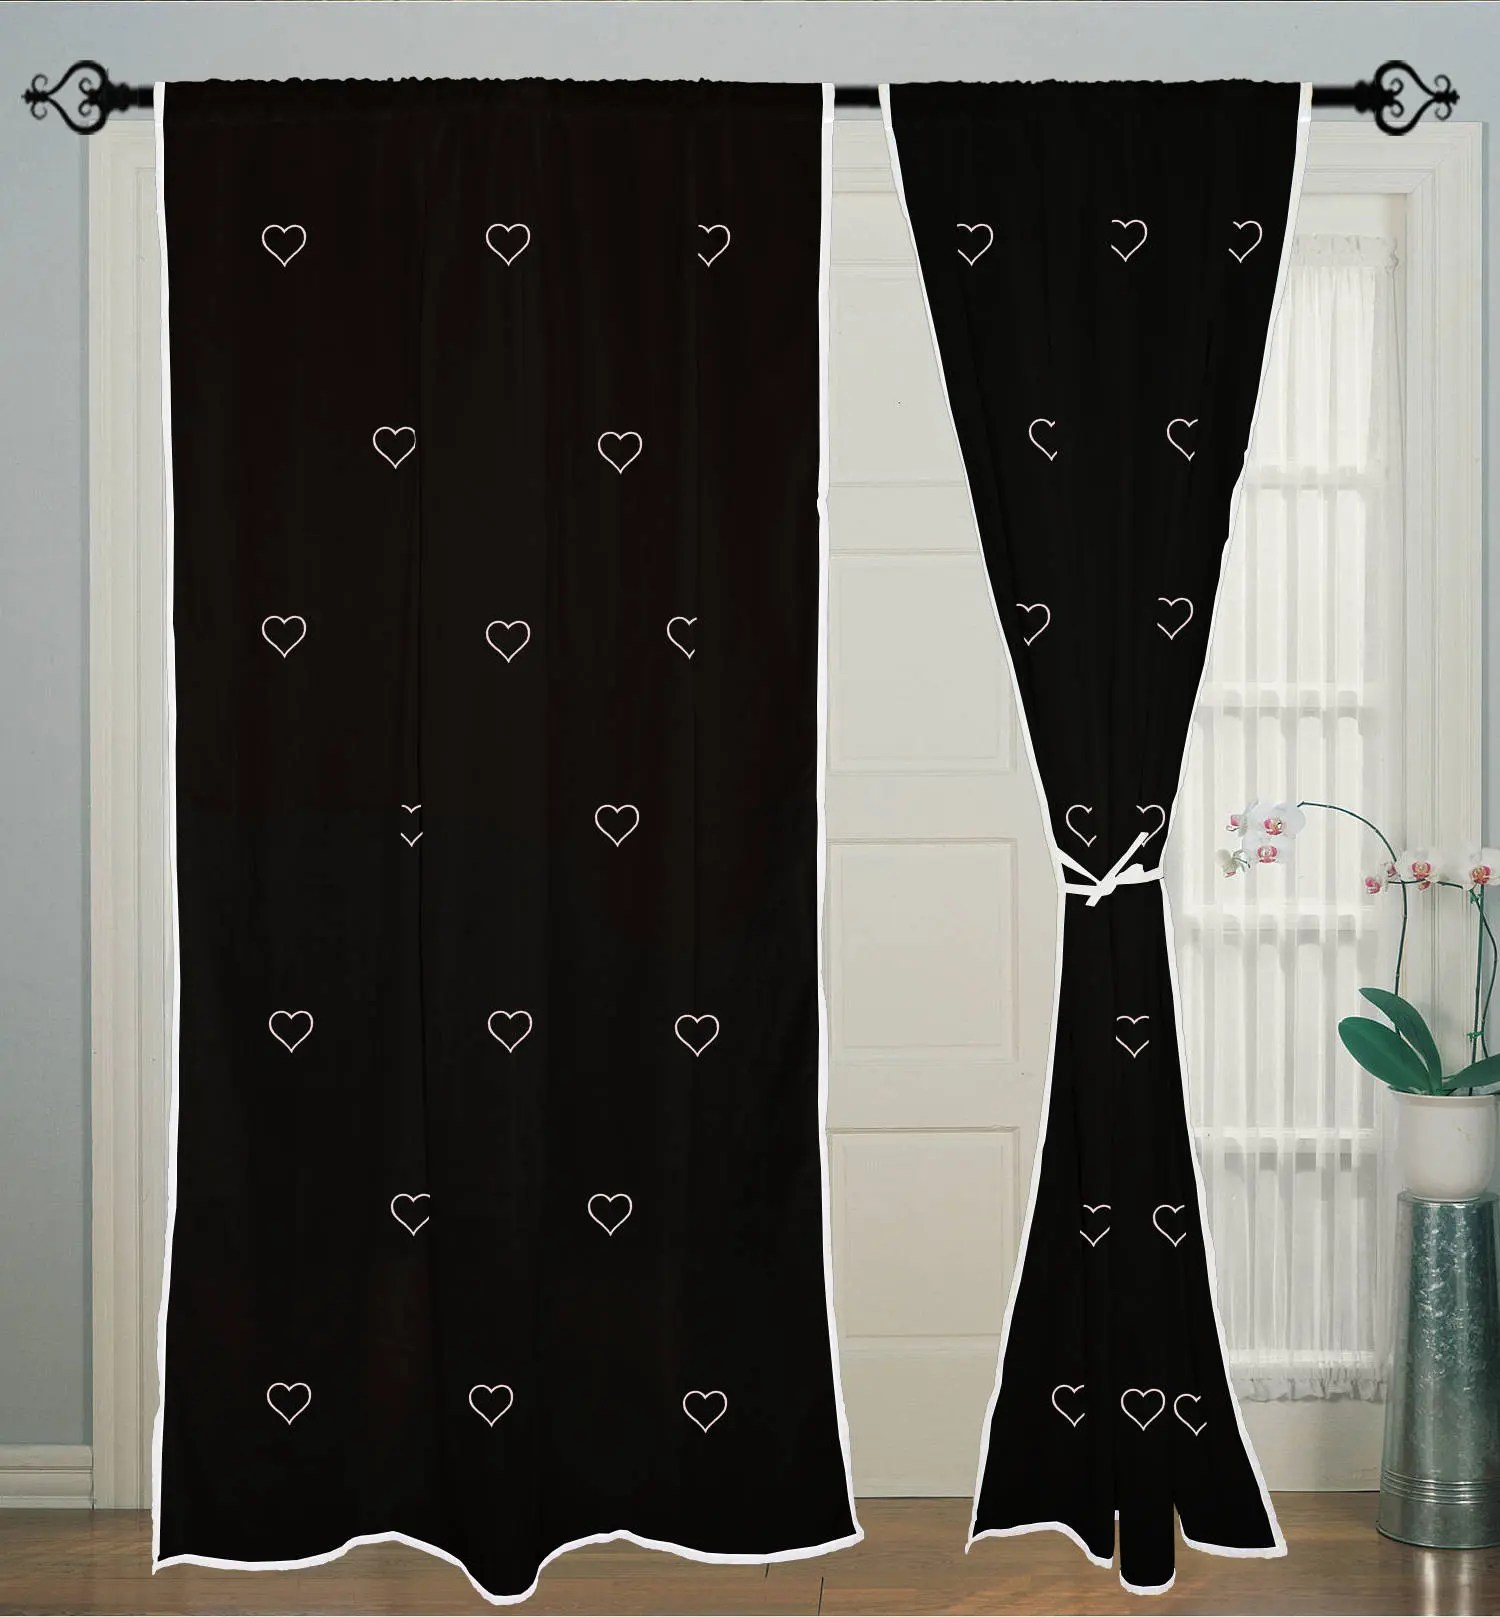 Cotton Curtain Panels 2 Pcs Heart Hand Block Printed Rod Pocket Curtains Panels Cotton Curtain Window Curtain Door Curtain Panel